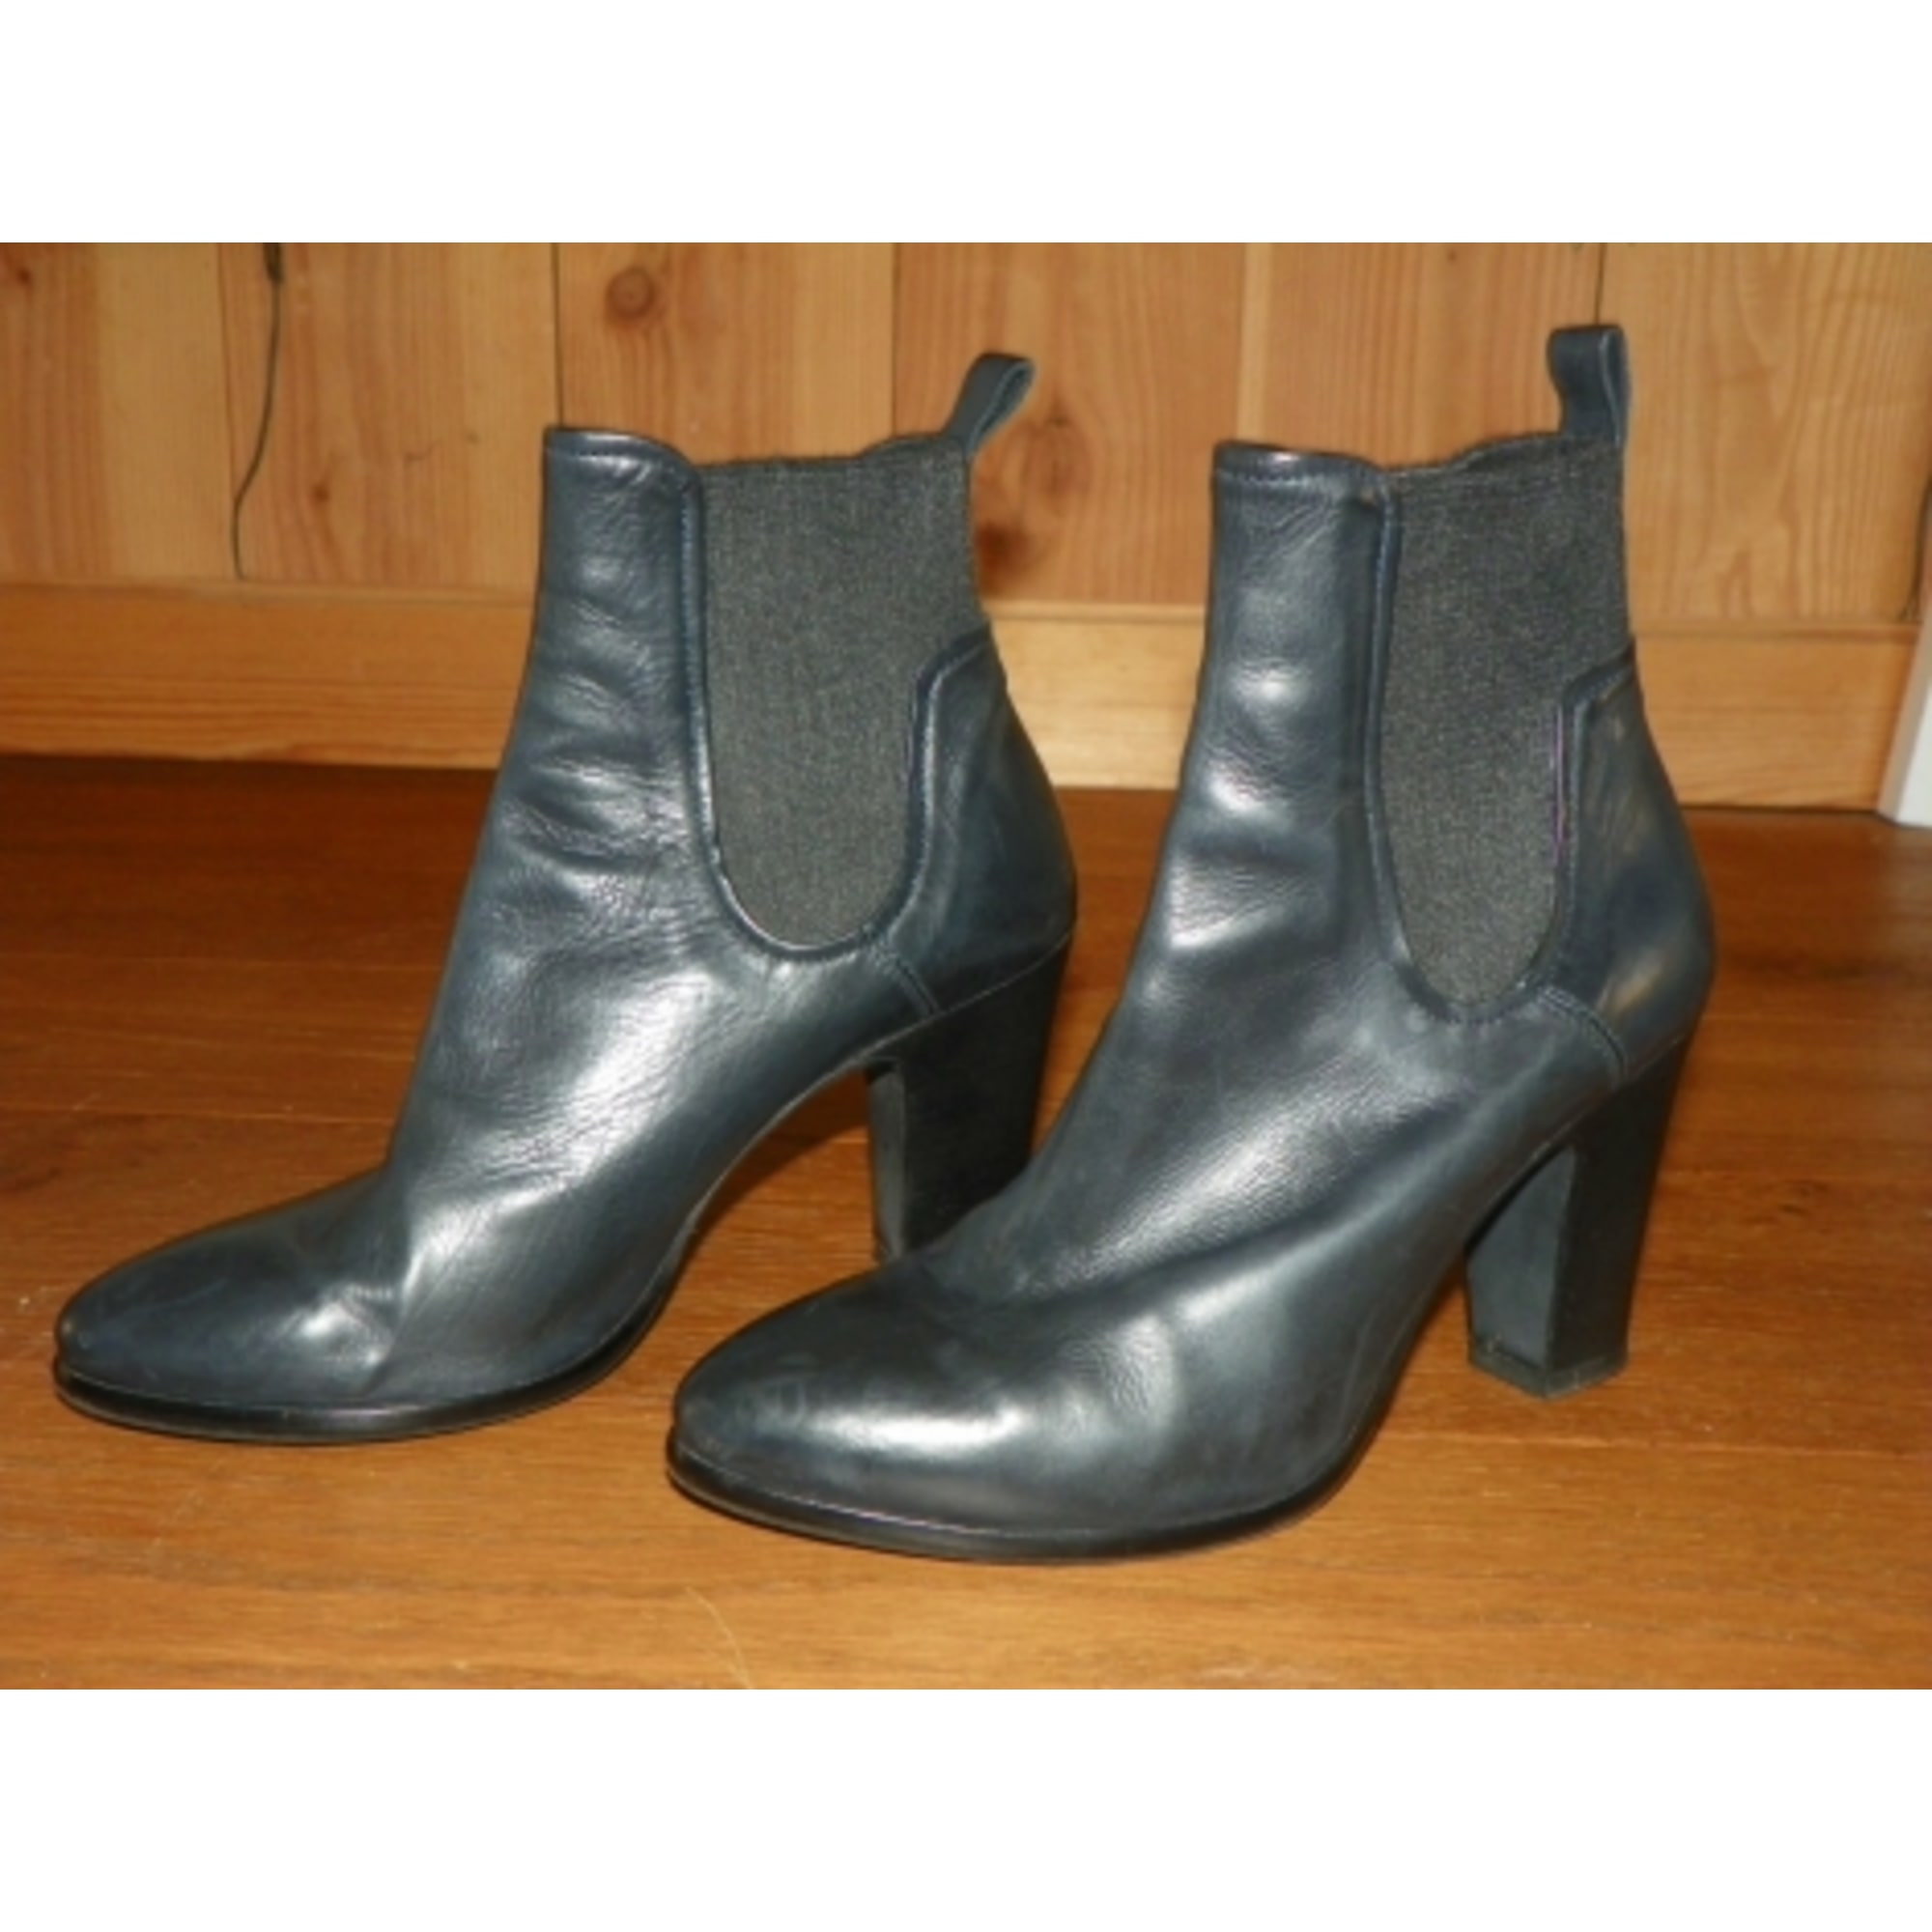 8295438fe4669 High Heel Ankle Boots VERO CUOIO 38 gray - 7267765